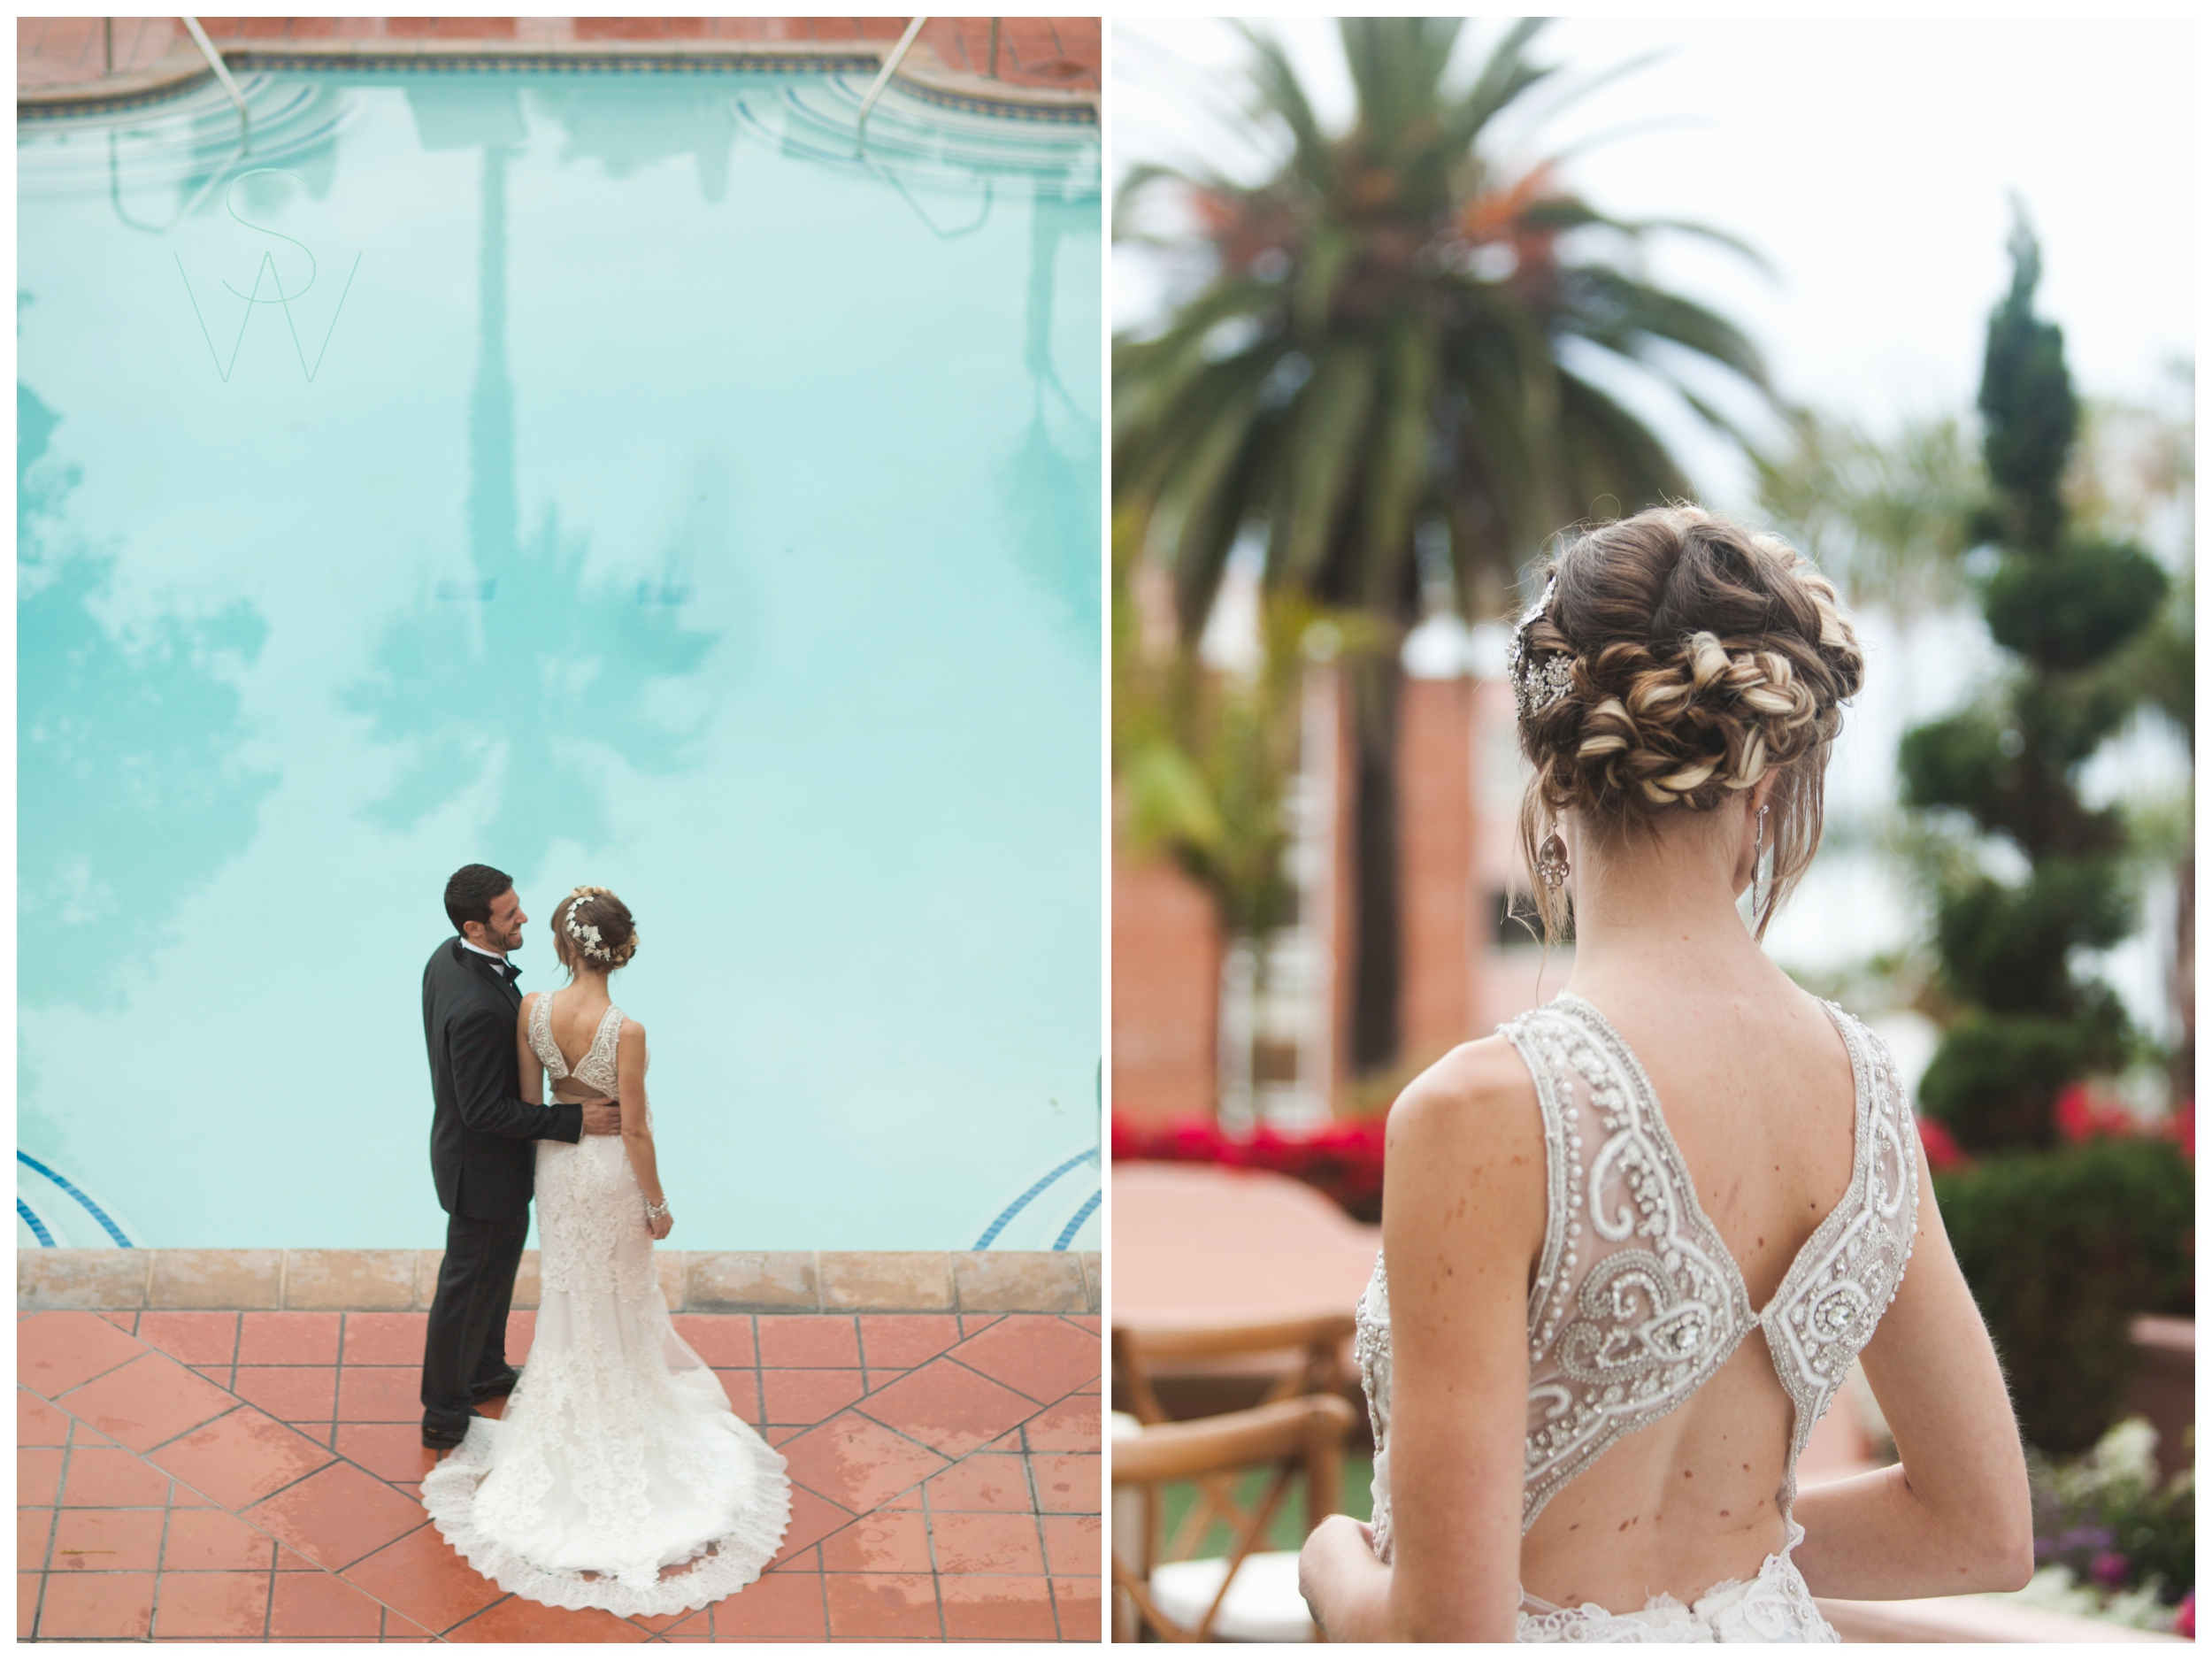 shewanders.wedding.photography.la_.jolla171.jpg.photography.la_.jolla171.jpg